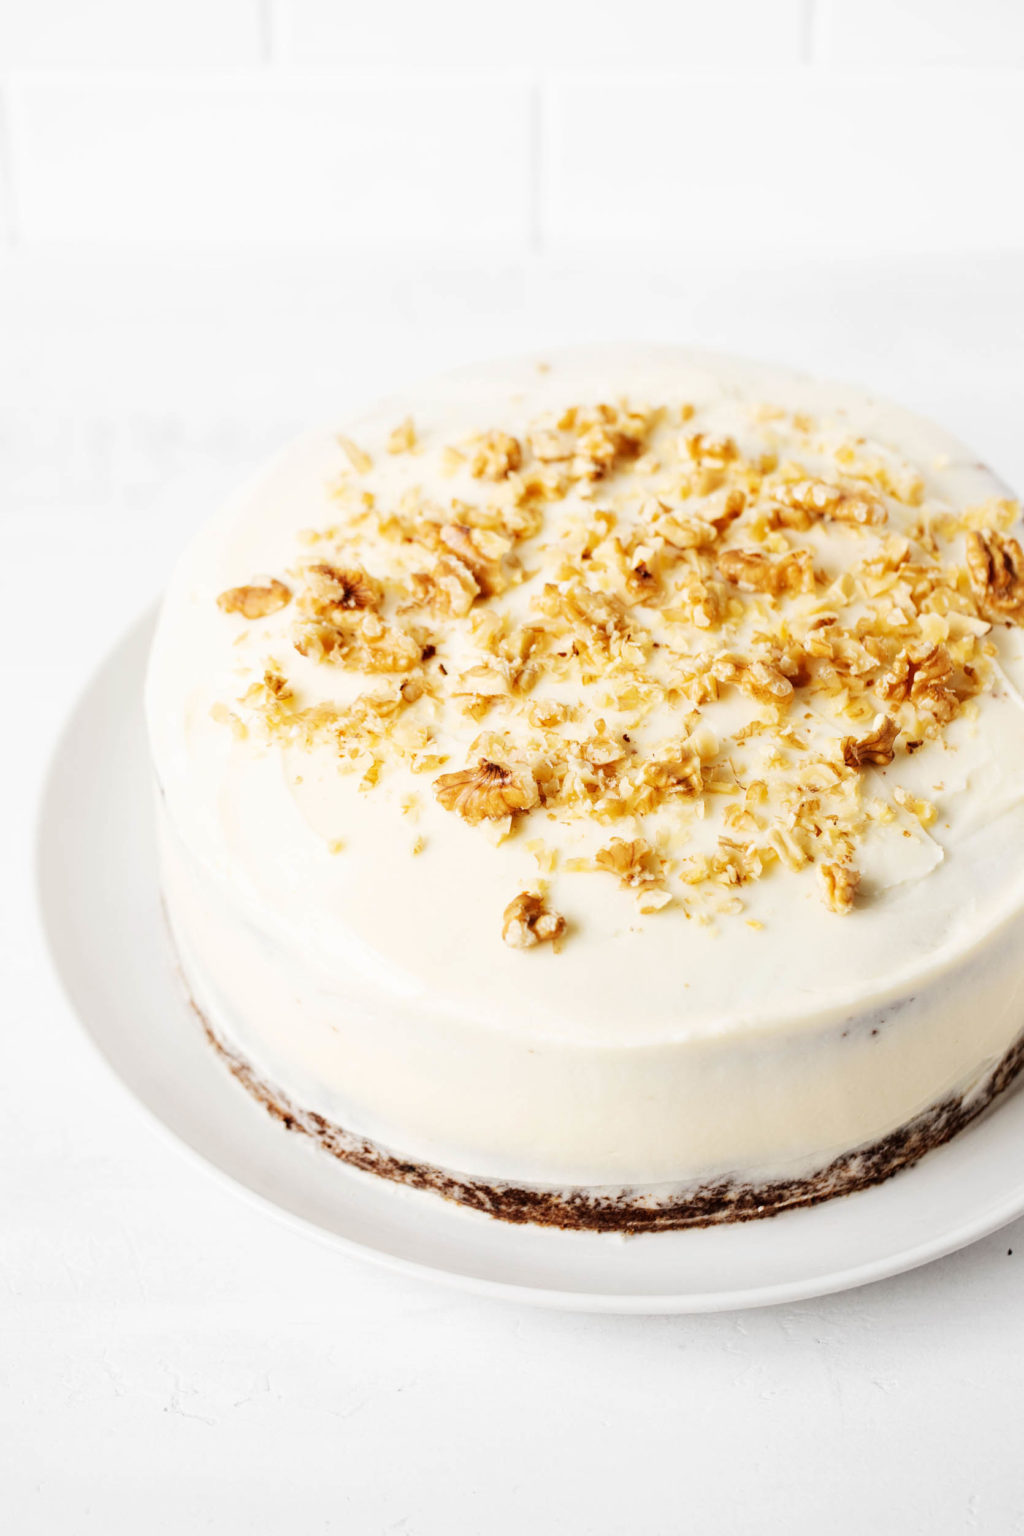 A frosted vegan carrot cake with chopped walnuts on top.